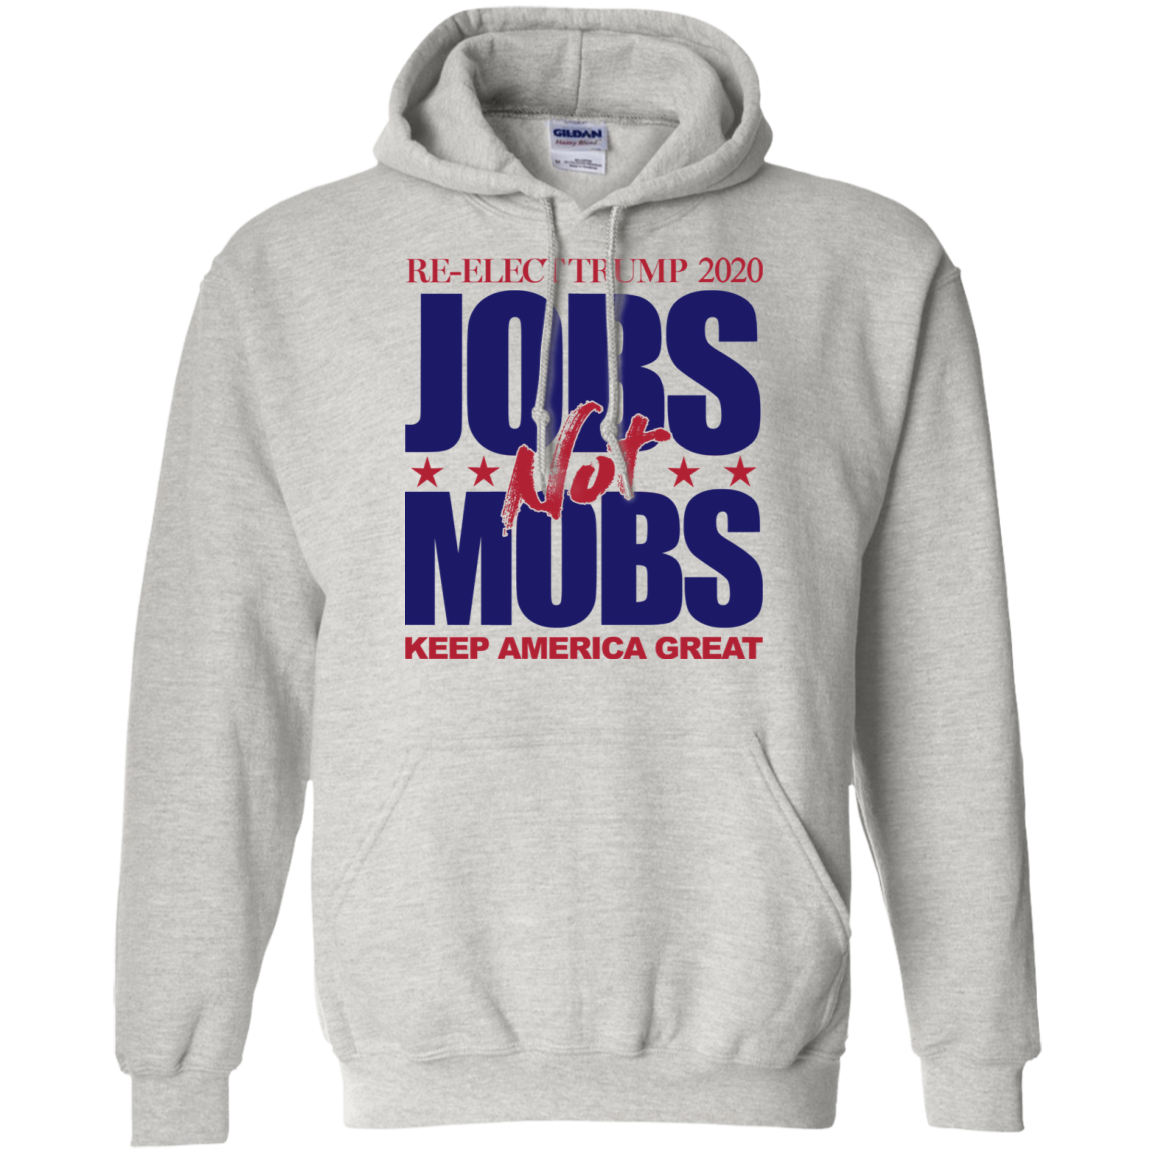 Jobs Not Mobs Keep America Great Re-Elect Trump 2020 Hoodie